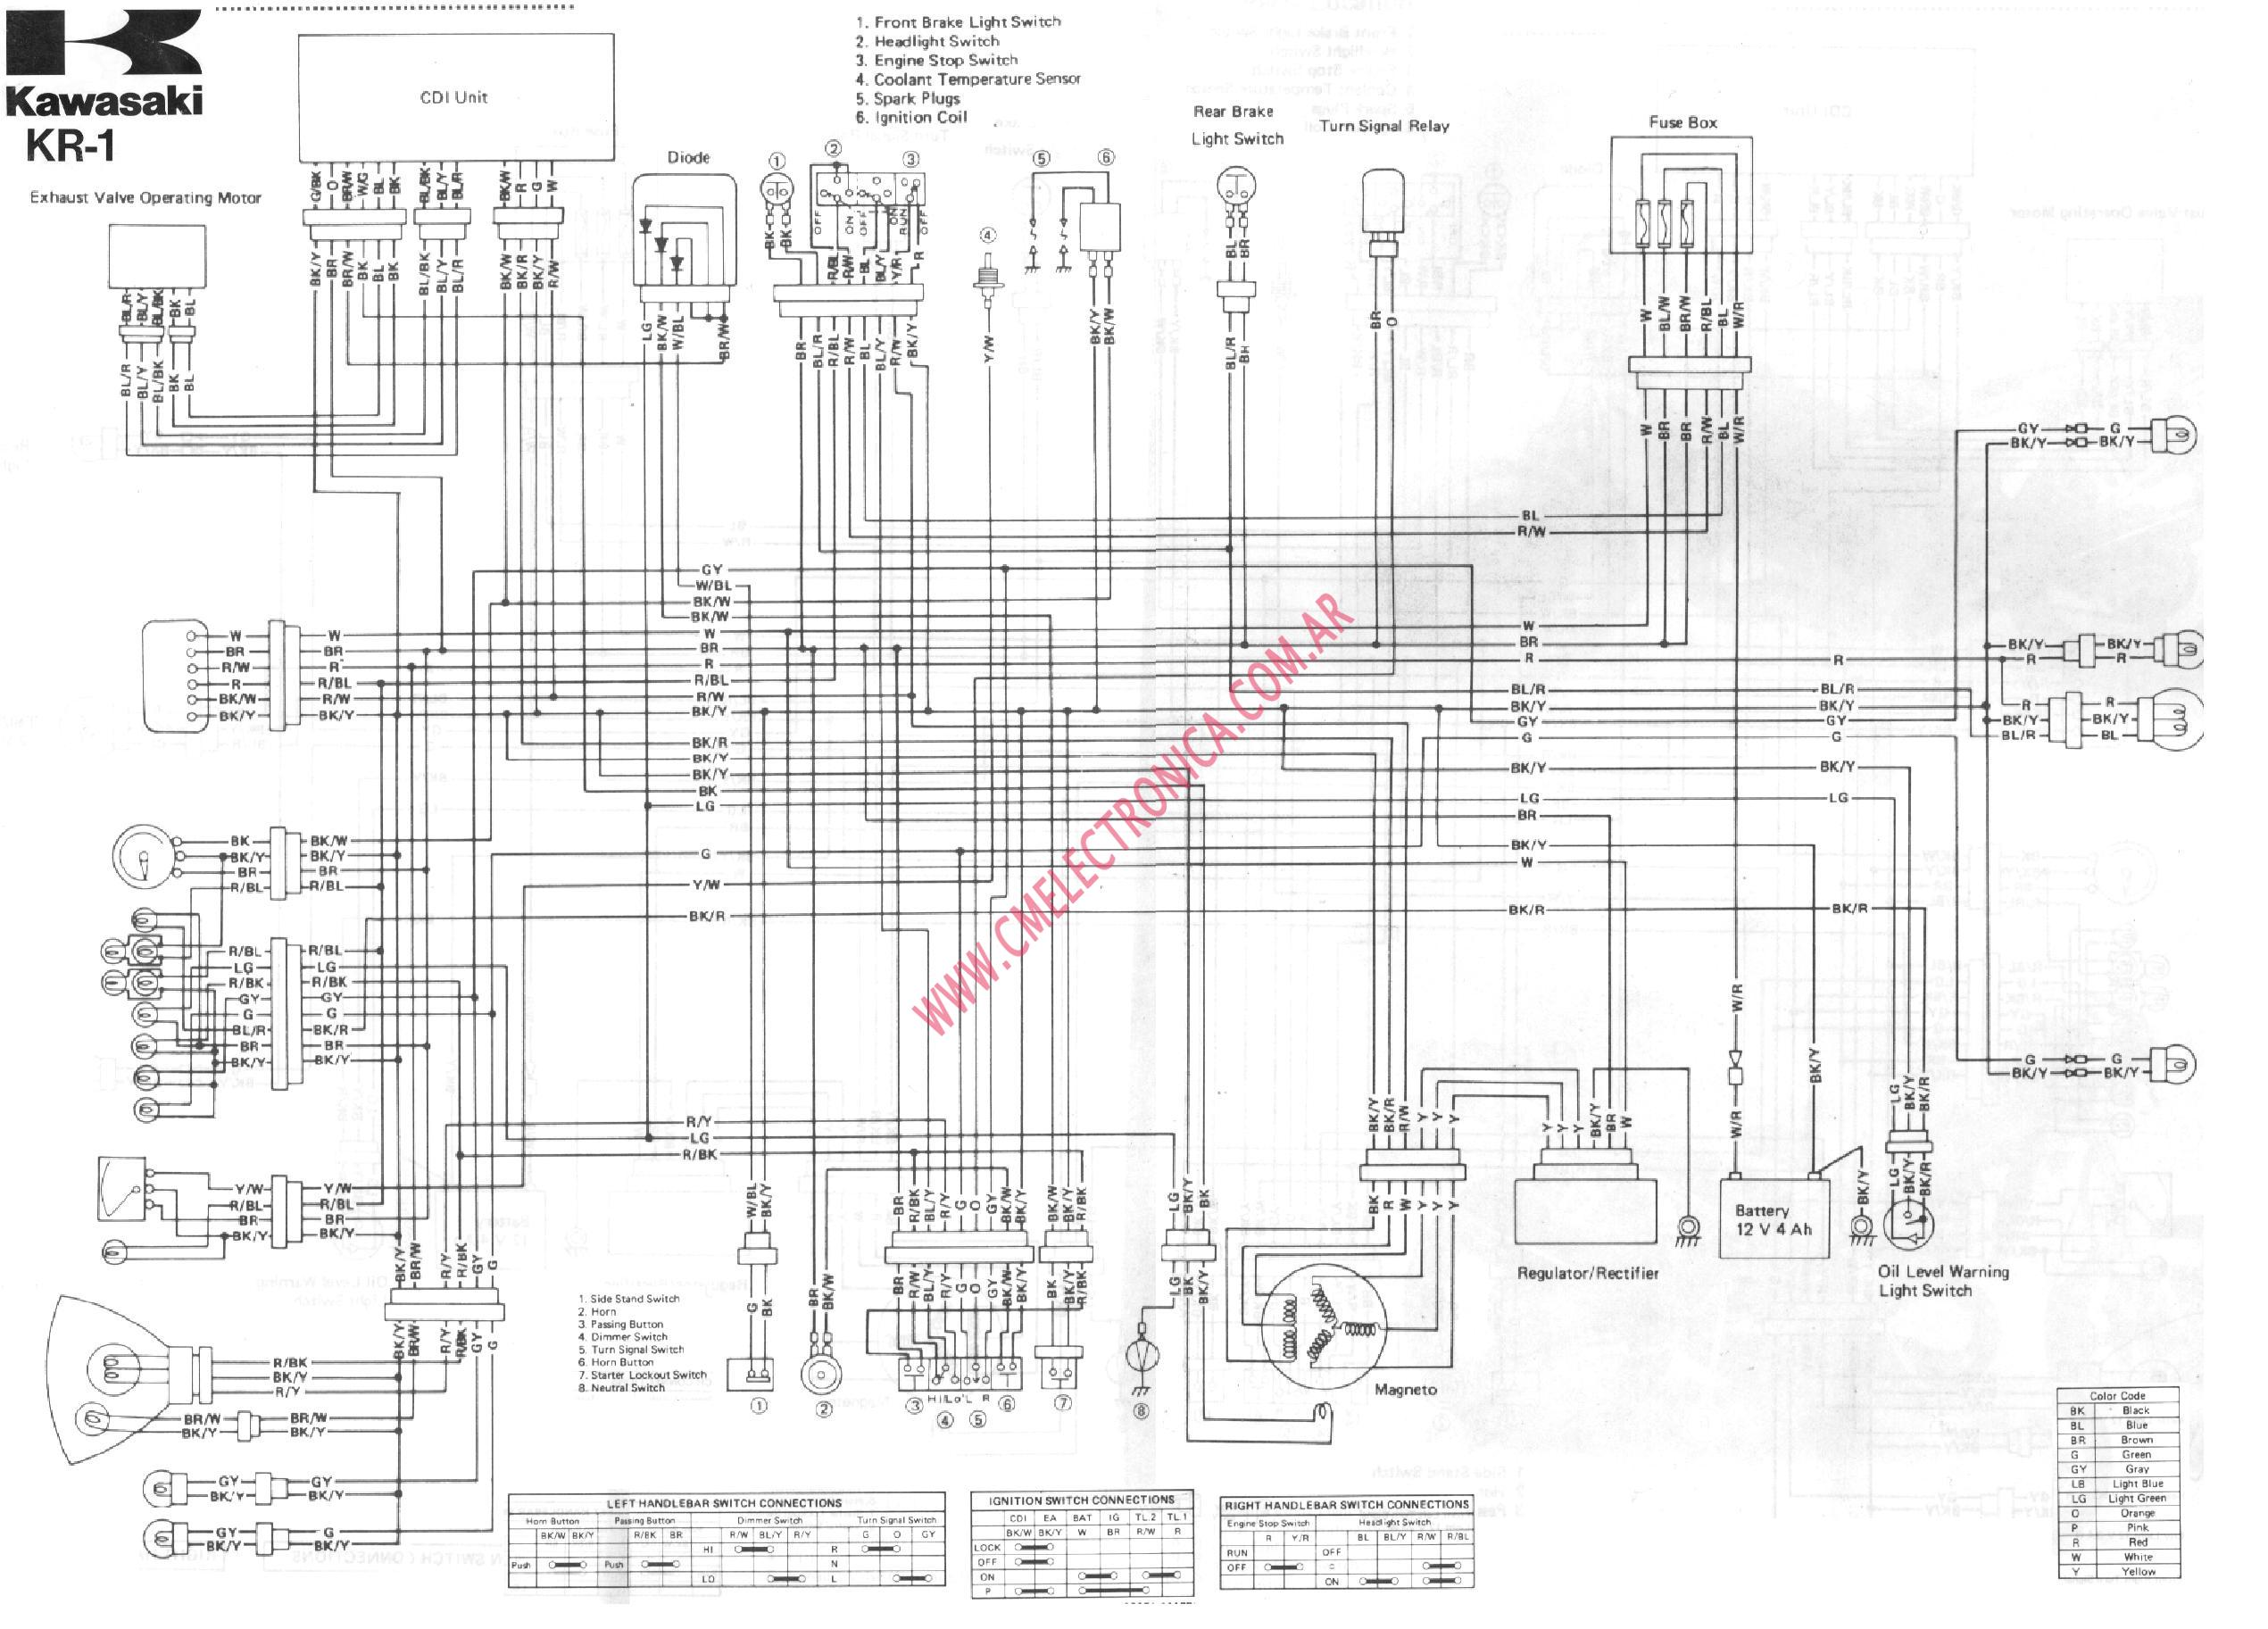 power wheels kawasaki wiring diagram attic fan thermostat 4 wheeler prairie 360